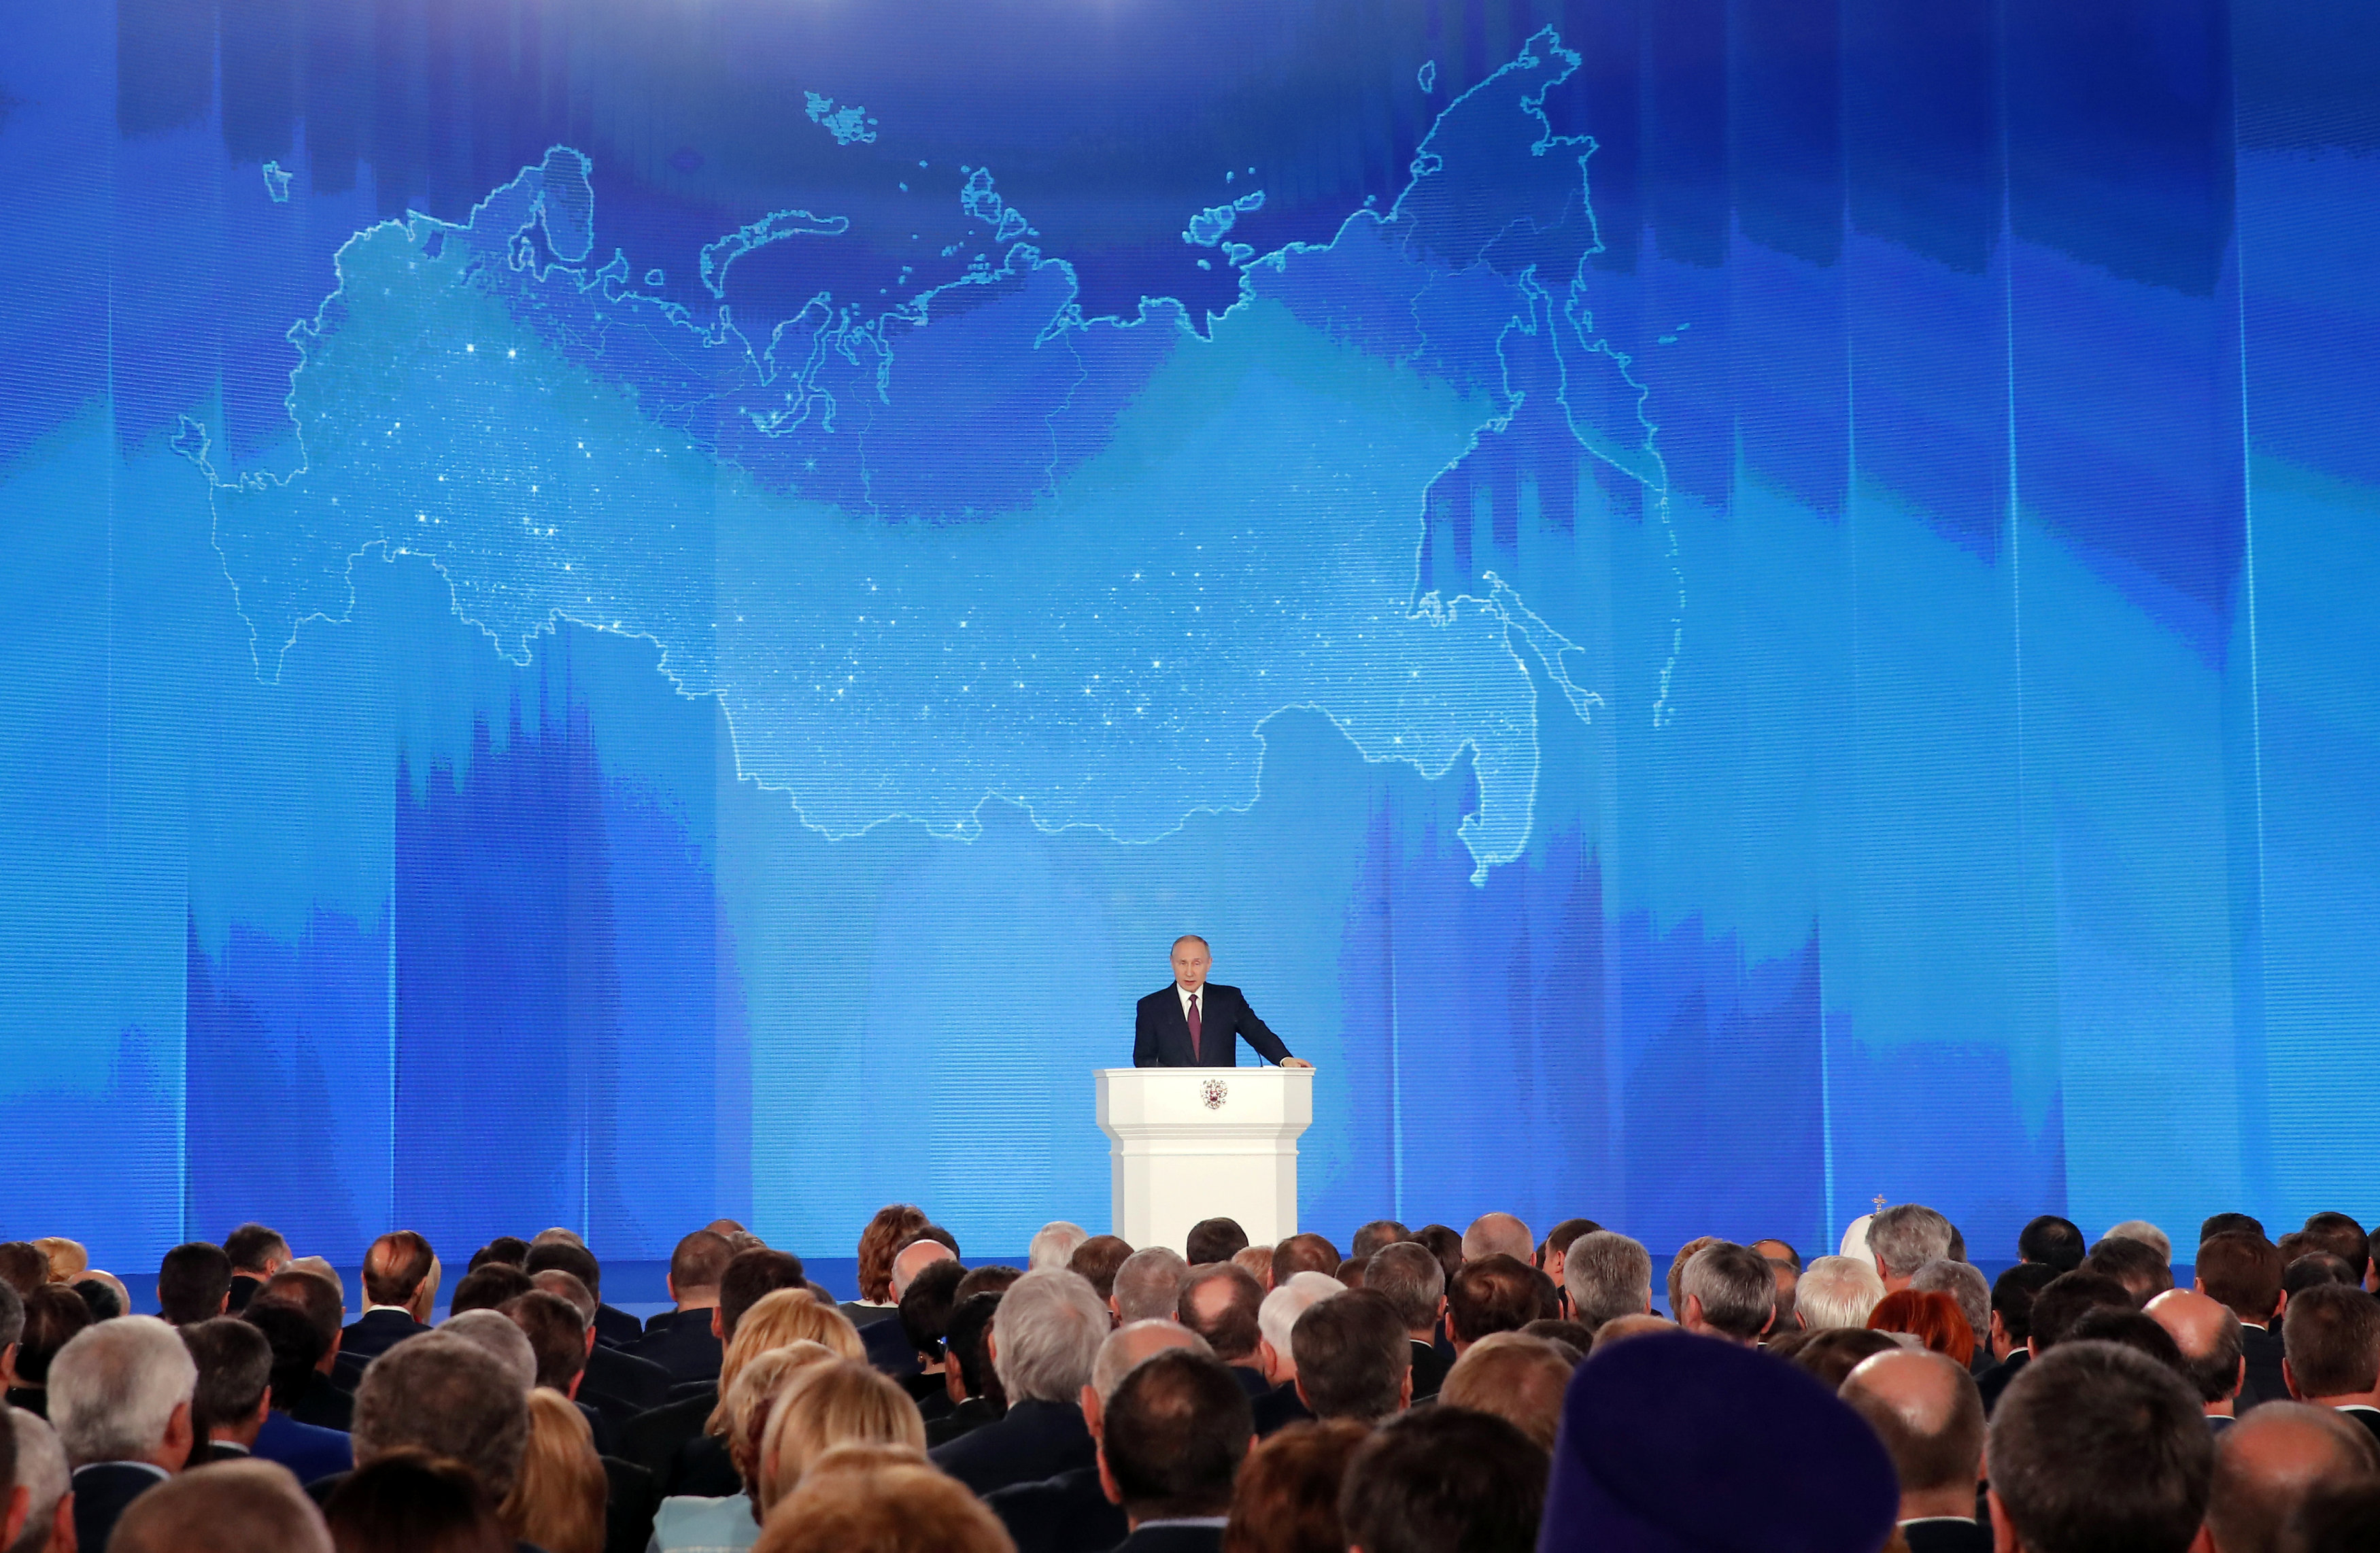 Russian President Vladimir Putin addresses the Federal Assembly, including the State Duma parliamentarians, members of the Federation Council, regional governors and other high-ranking officials, in Moscow, Russia March 1, 2018. REUTERS/Maxim Shemetov